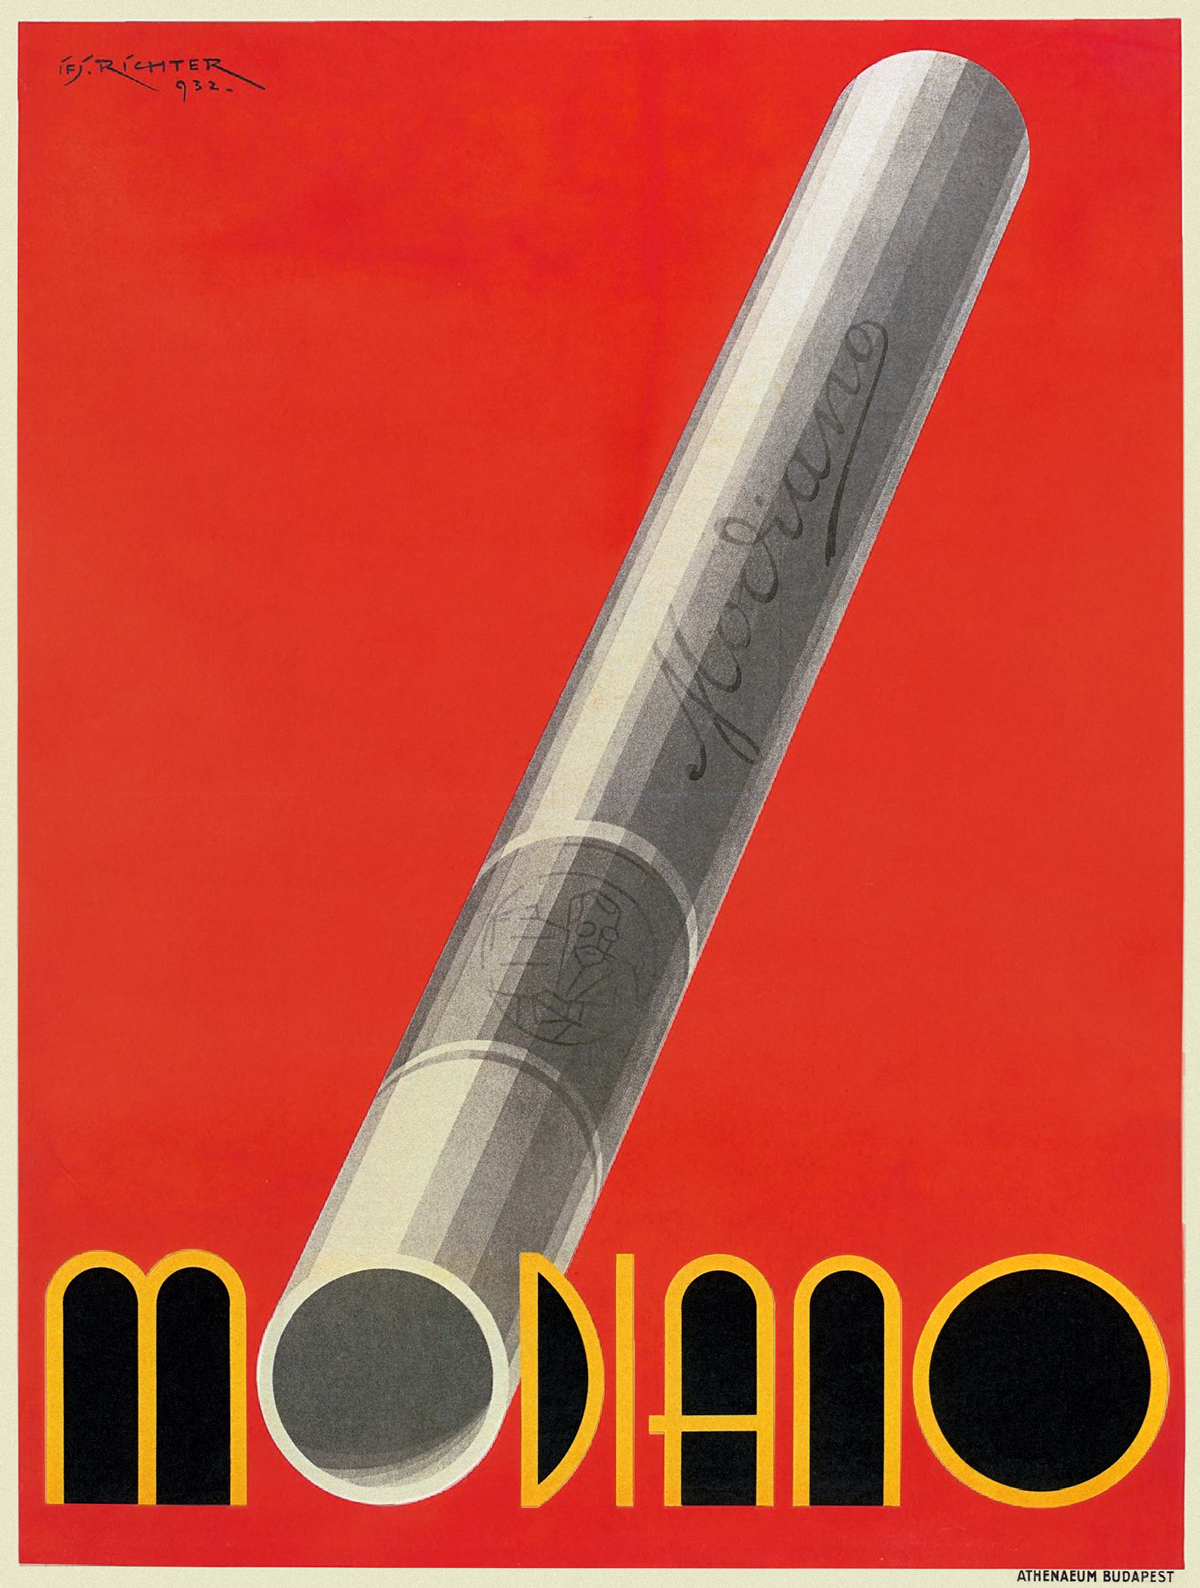 Modiano Cigarette Poster by Aladar Richter 1932